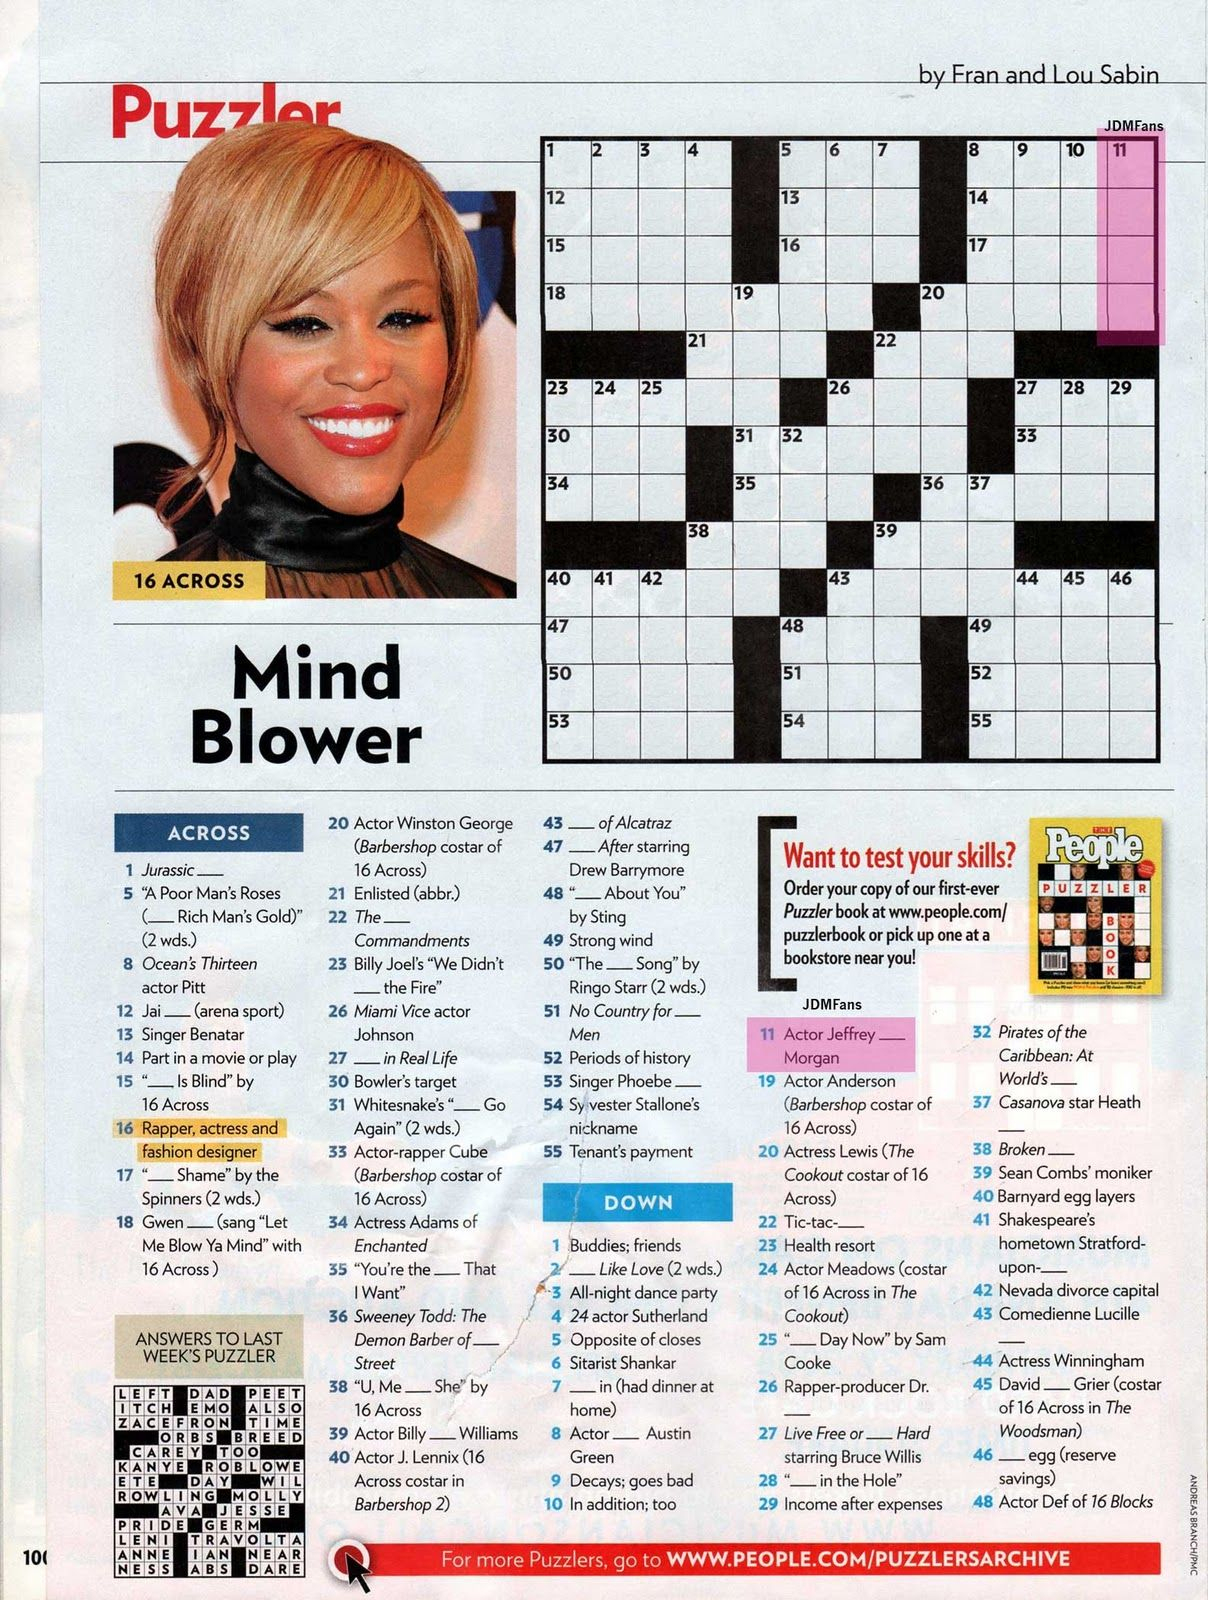 People Magazine Crossword Puzzles To Print | Puzzles In 2019 - Printable Celebrity Crossword Puzzles